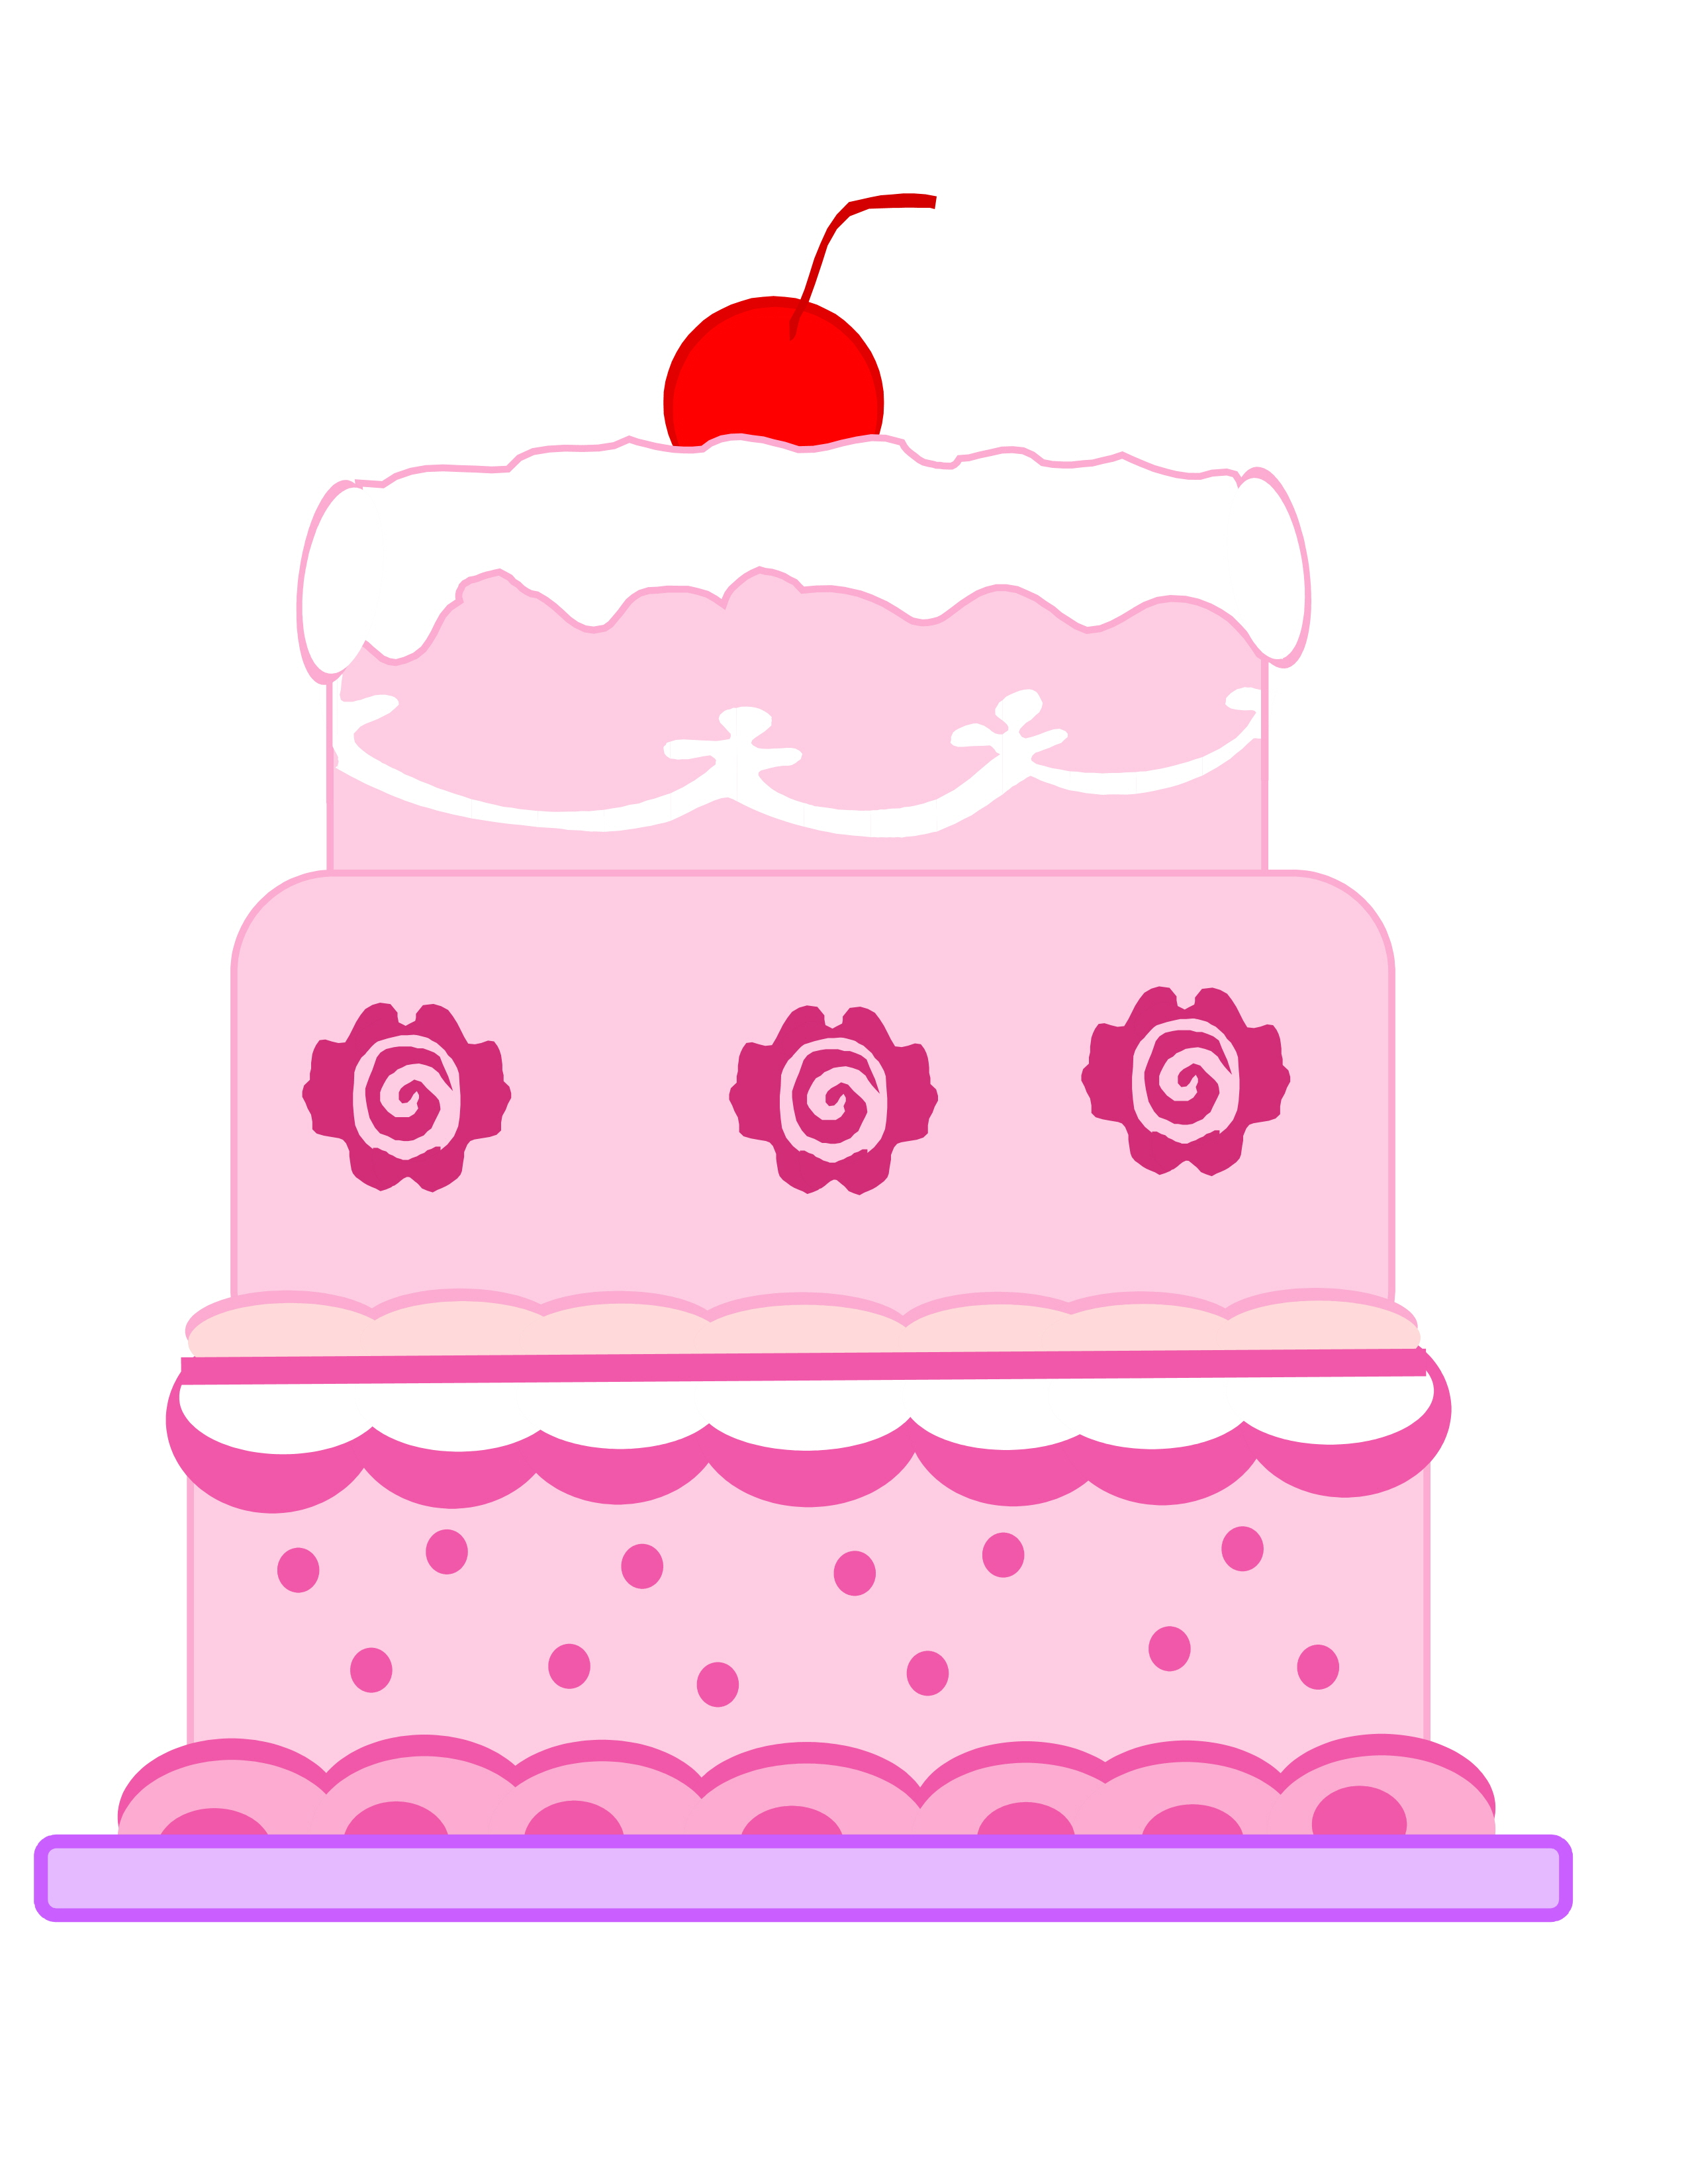 Cake Animated Pic : Animated Cake Clipart - Clipart Suggest